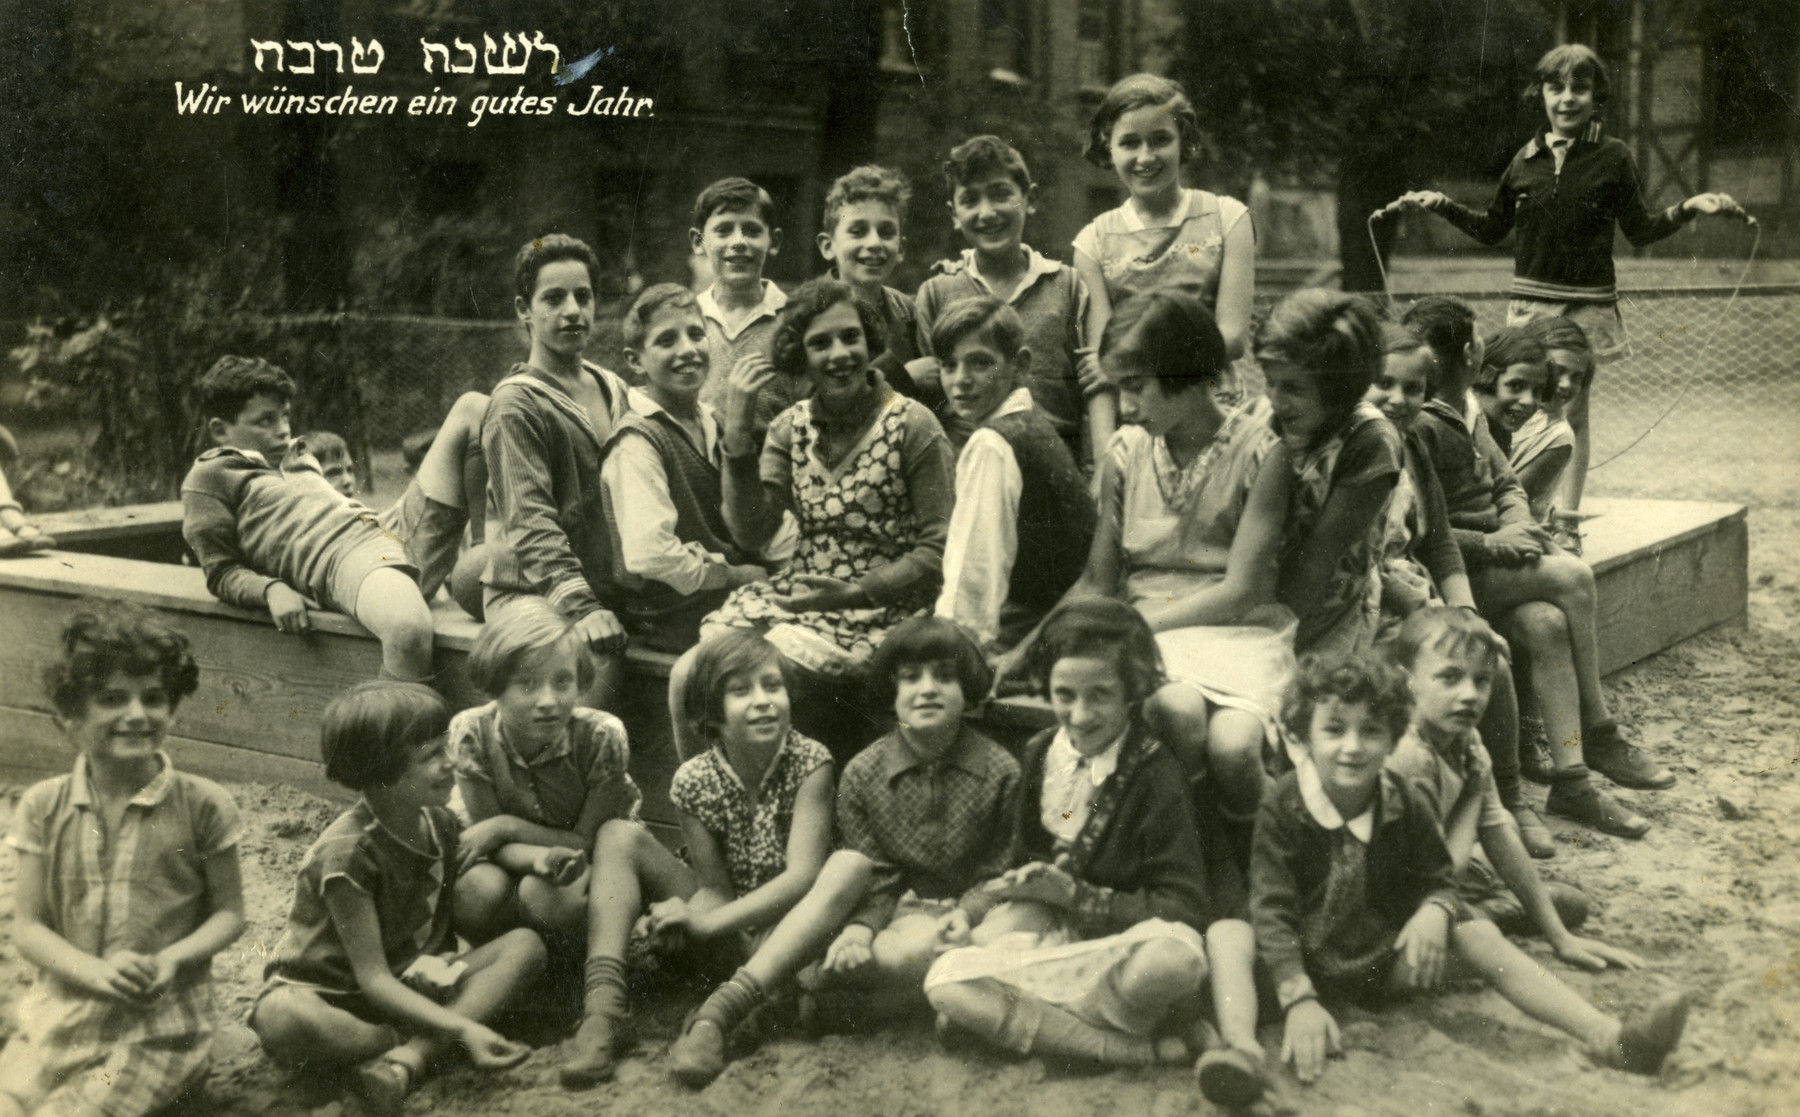 New Year's Photo of the Ahawah children, who were the first group from the children's home to emigrate to Palestine.  Moritz, Moppel, and Grauden are in the middle row, left side. Eva Grunspan is in the middle row, first from the right. Paula Adler is in the upper row, right side. Hermann Glass is in the upper row, fourth from right. Hermann Zvi Marcus is in the middle row, third from right. Fanny Bergbaum is in the lower row, fifth from left. Ruth Kirschenzweig is on Fanny's right.